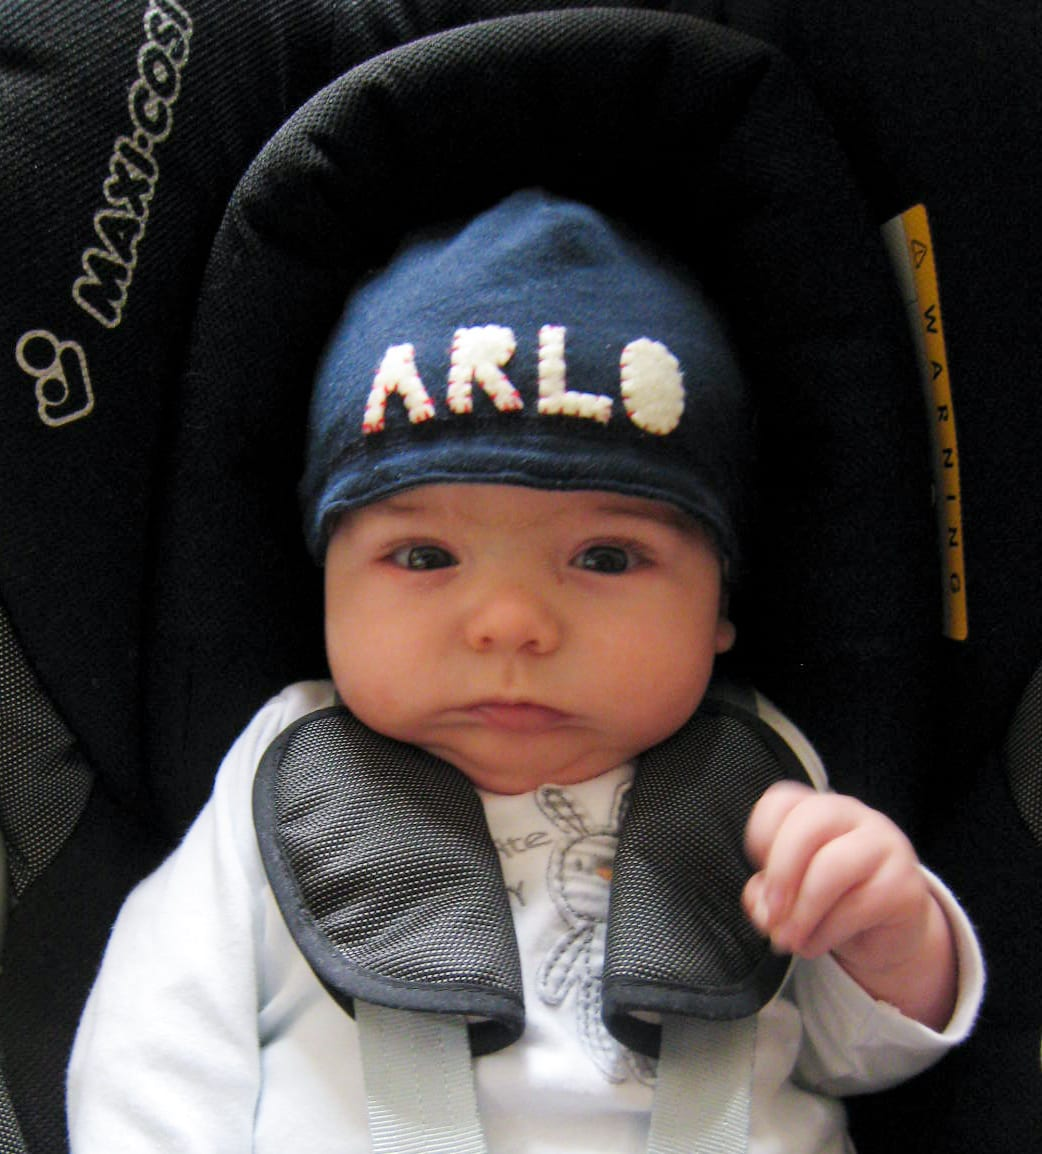 Arlo - Boy's name meaning, origin, and popularity | BabyCenter